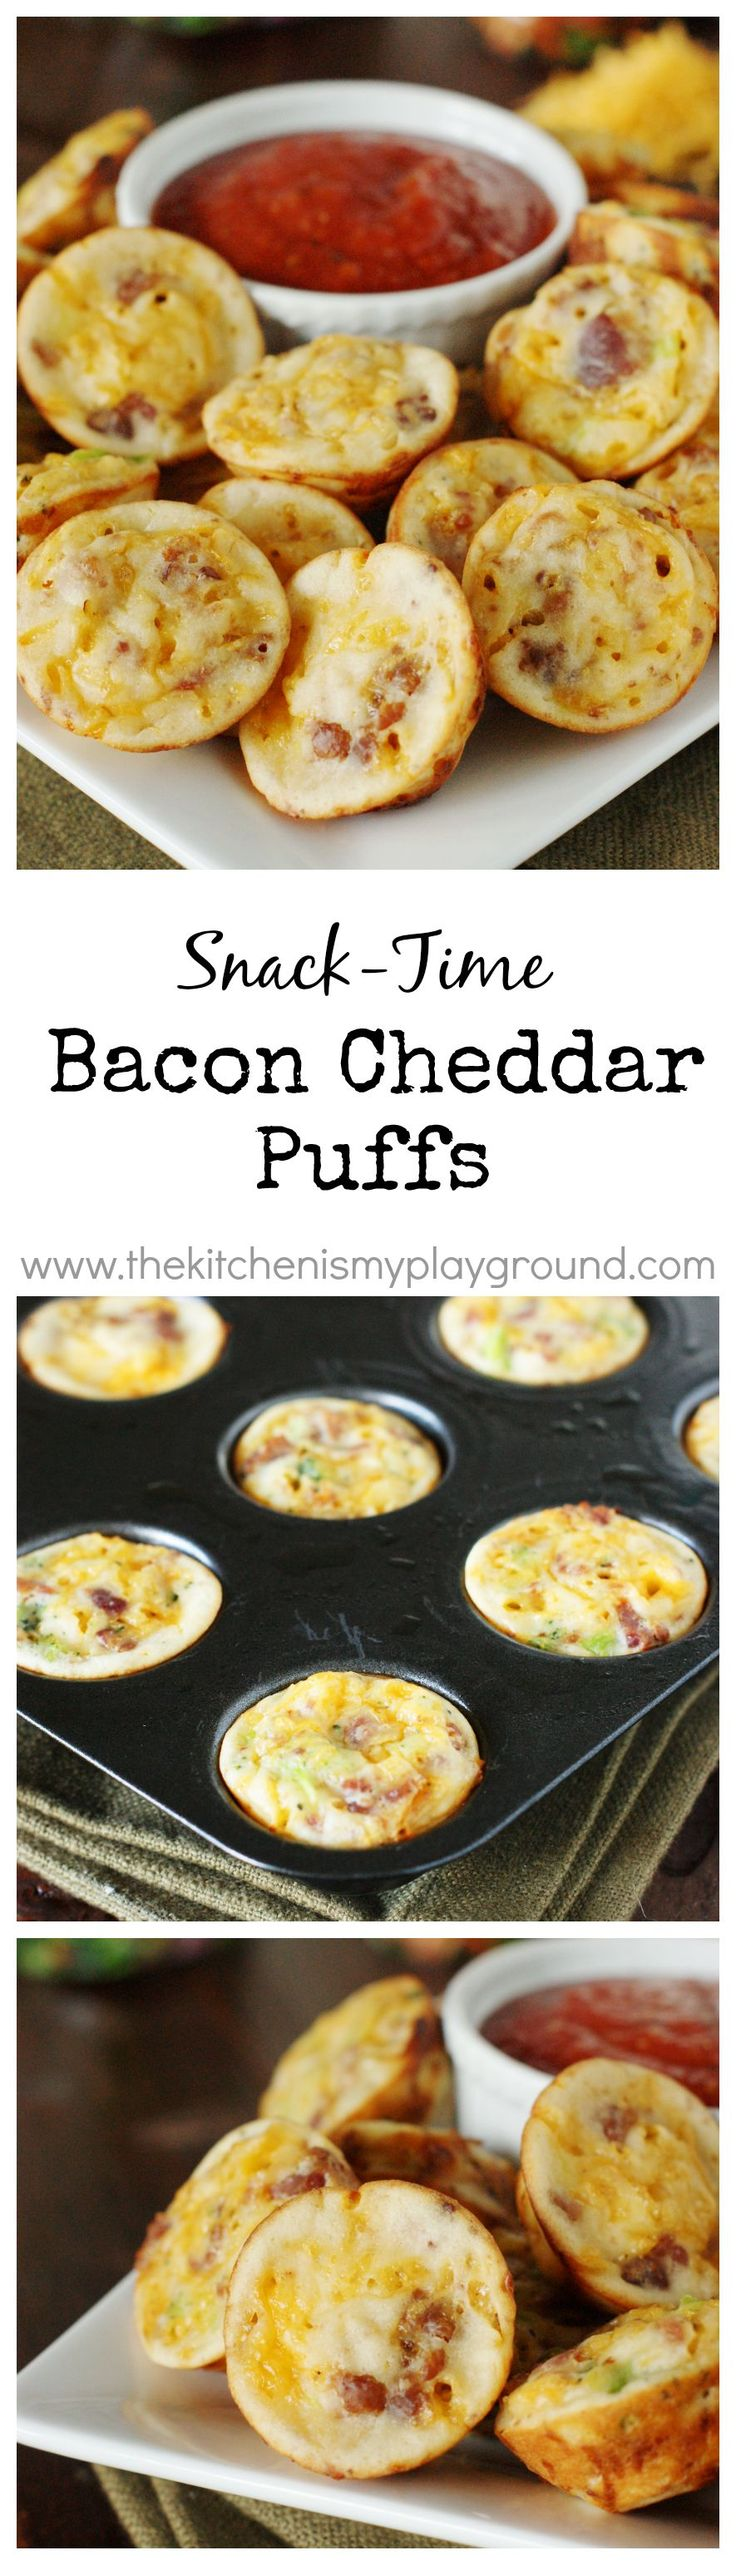 Bacon Cheddar Puffs ~ Perfect for easy snacking! Snack time. Game time. Party time. Or even breakfast! Freeze to have on hand for anytime. #ad www.thekitchenismyplayground.com